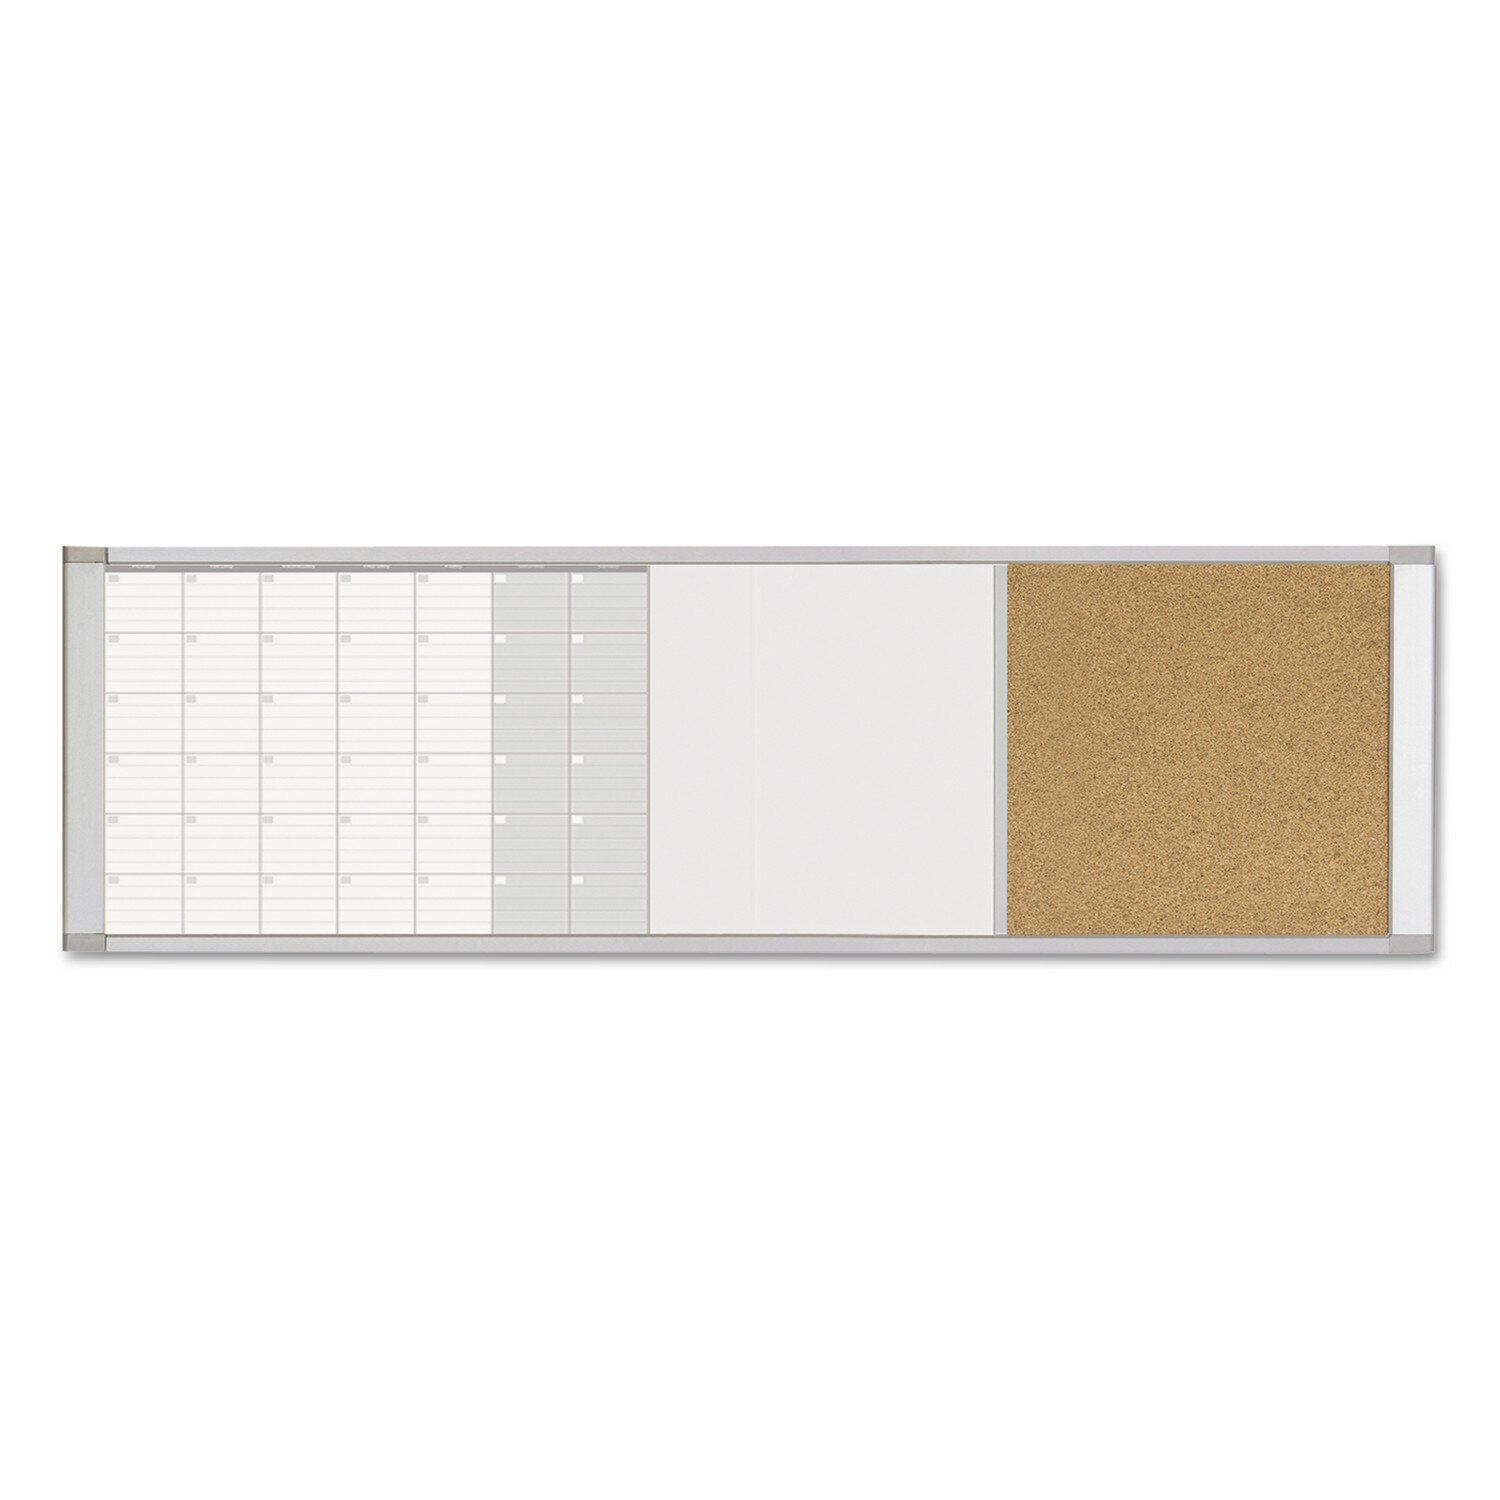 Mastervision Magnetic Wall Mounted Combo Board Wayfair